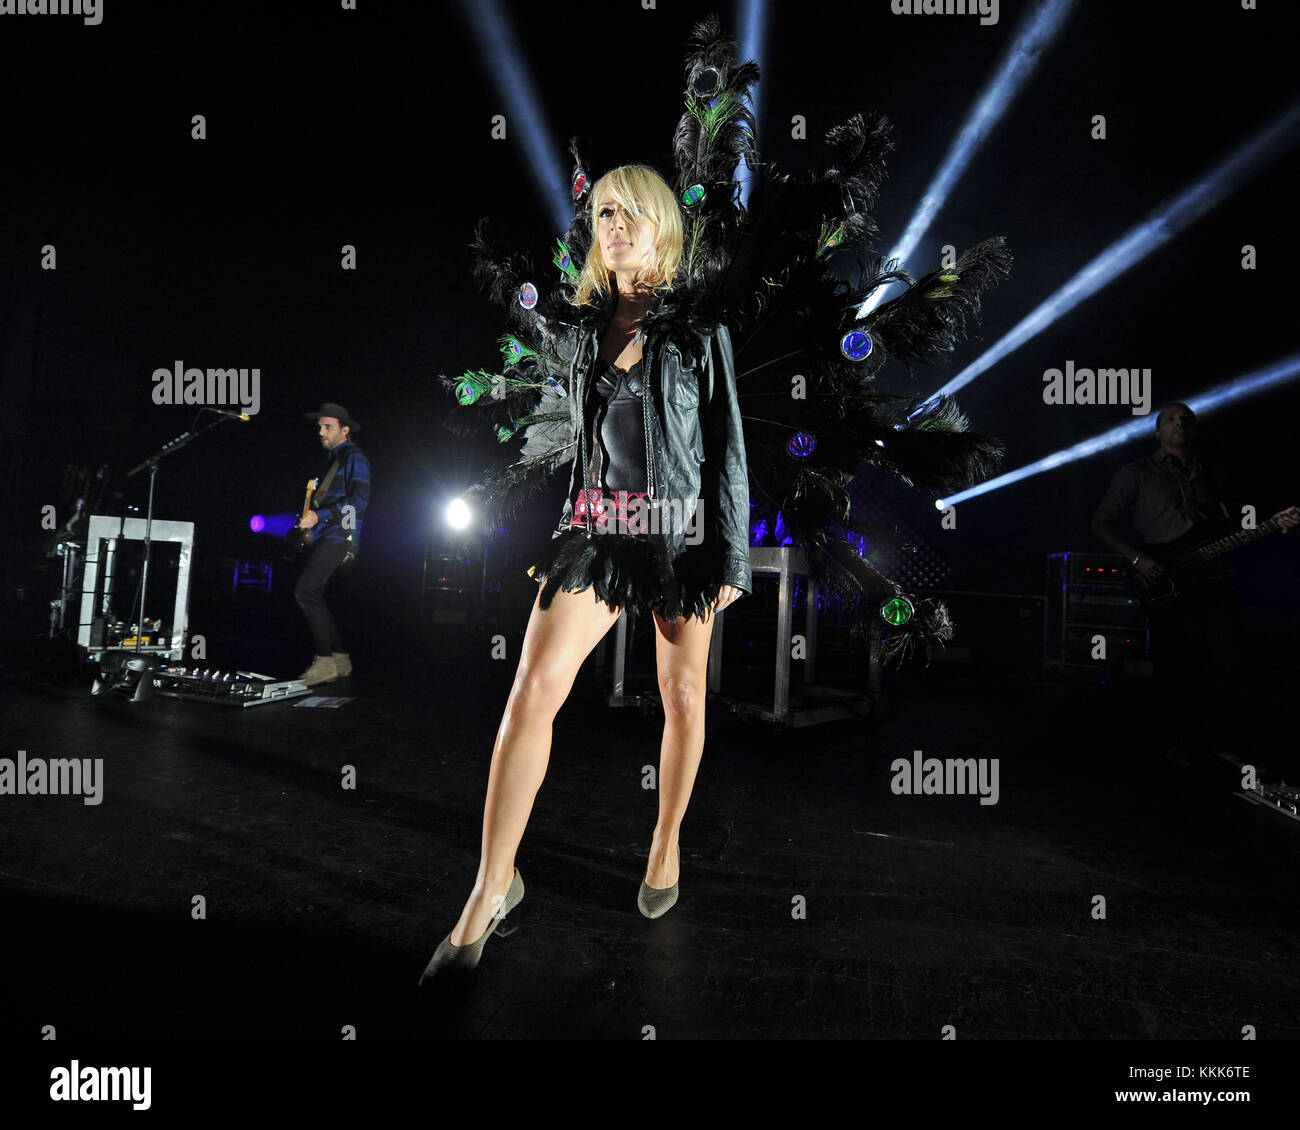 MIAMI BEACH, FL - NOVEMBER 02: Emily Haines of Metric performs at The Fillmore on November 2, 2015 in Miami Beach, Stock Photo